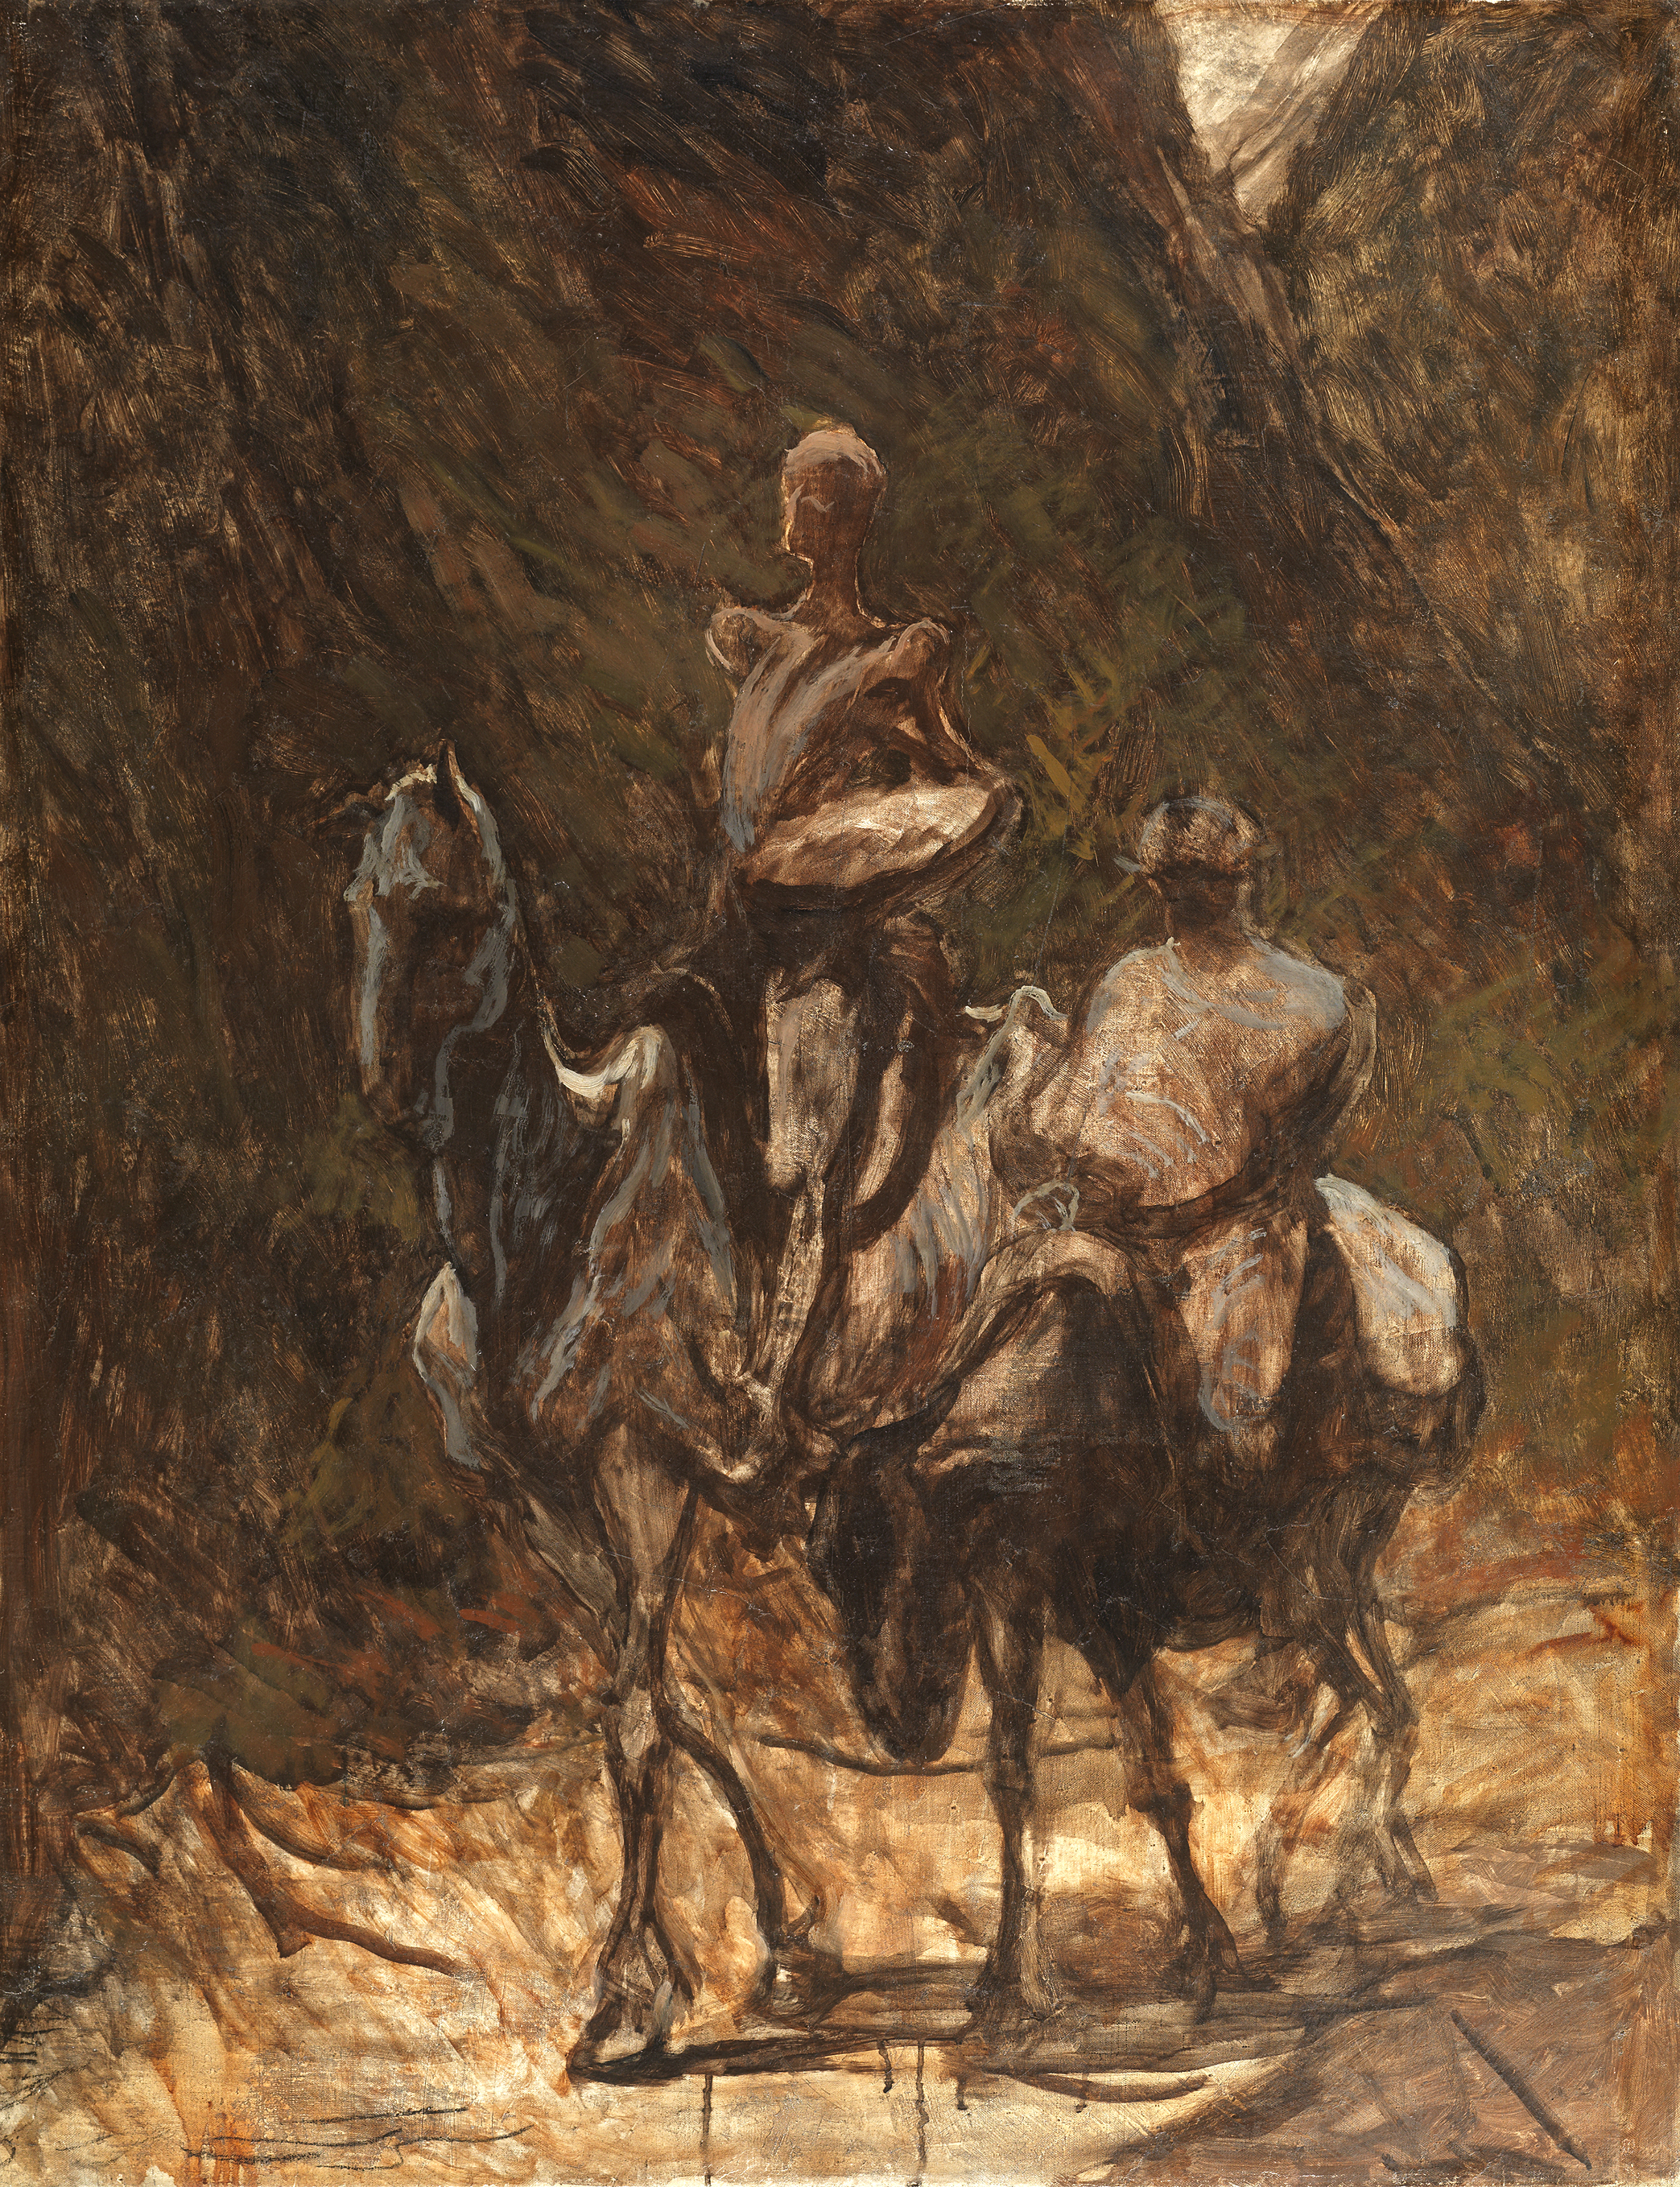 Don Quixote and Sancho Panza - Honoré-Victorin Daumier, 1868-72